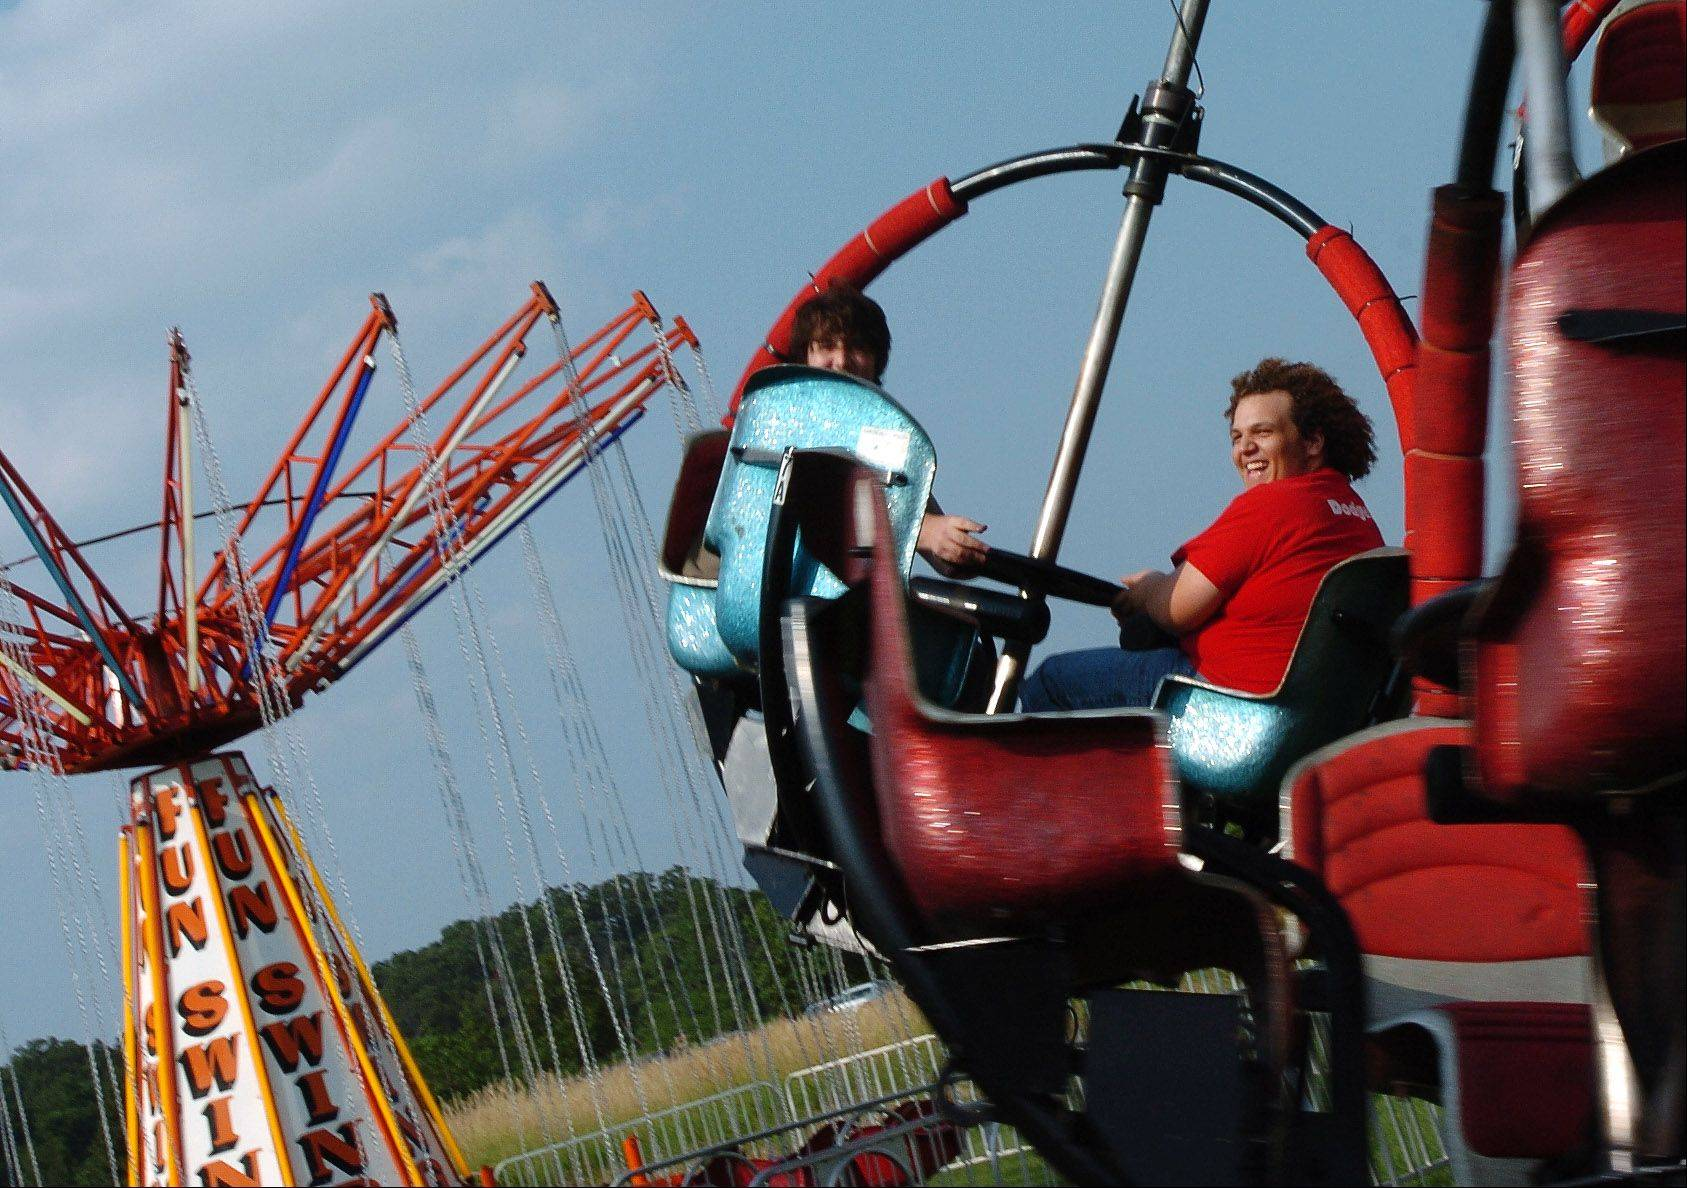 There are plenty of carnival rides at the Bartlett Fourth of July fest.